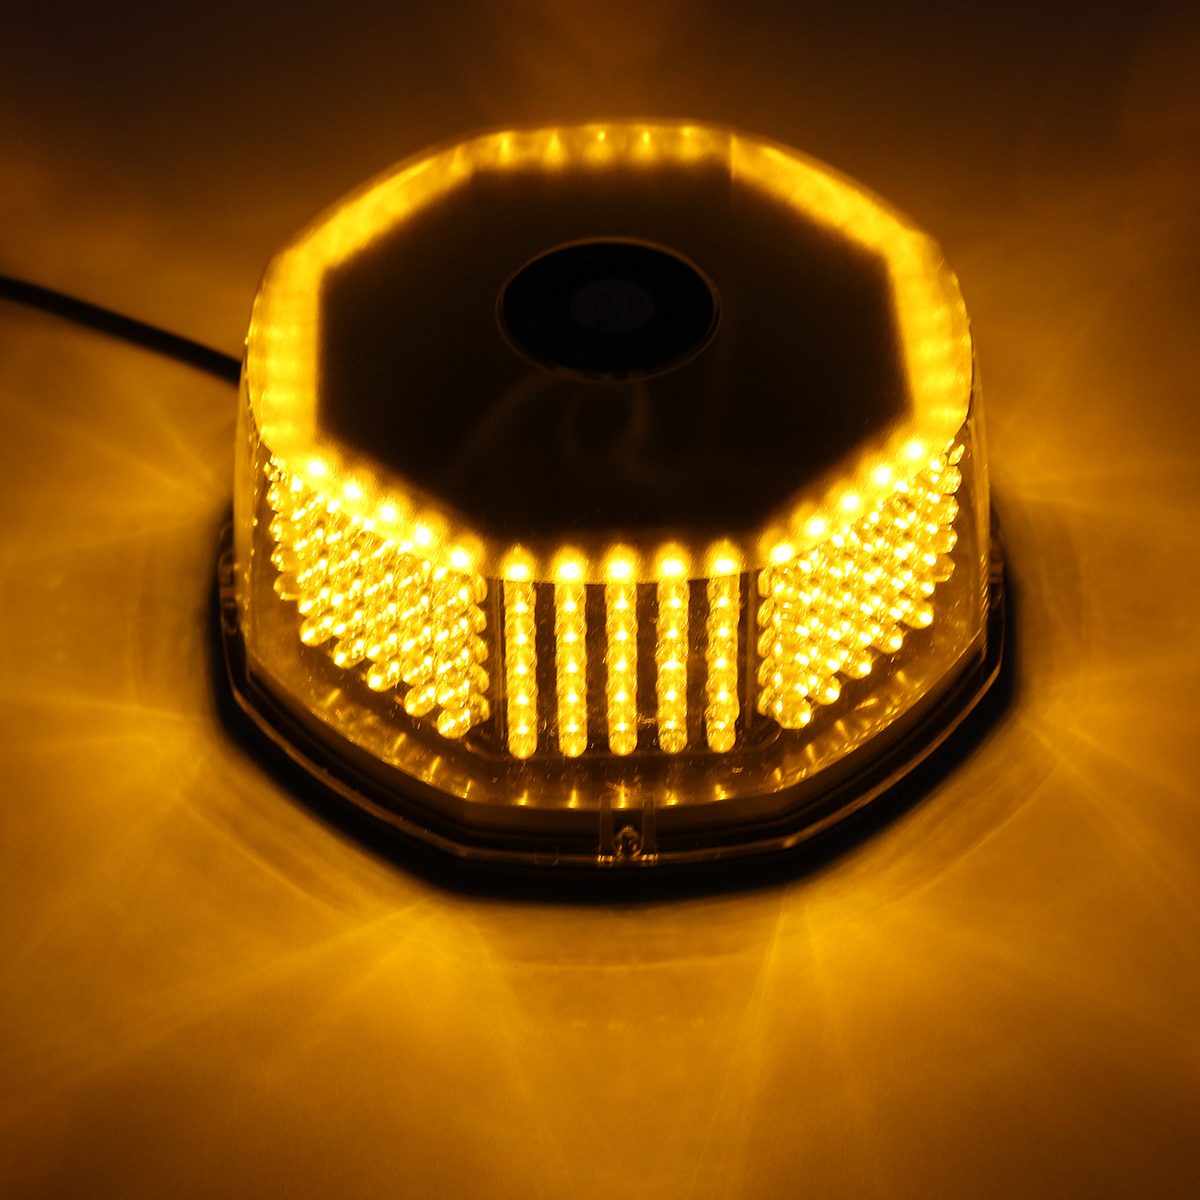 12 Volt Led Verlichting Knippert Amber 240 Led Beacon Car Light Knipperende Magnetische Noodwaarschuwing Strobe Lamp